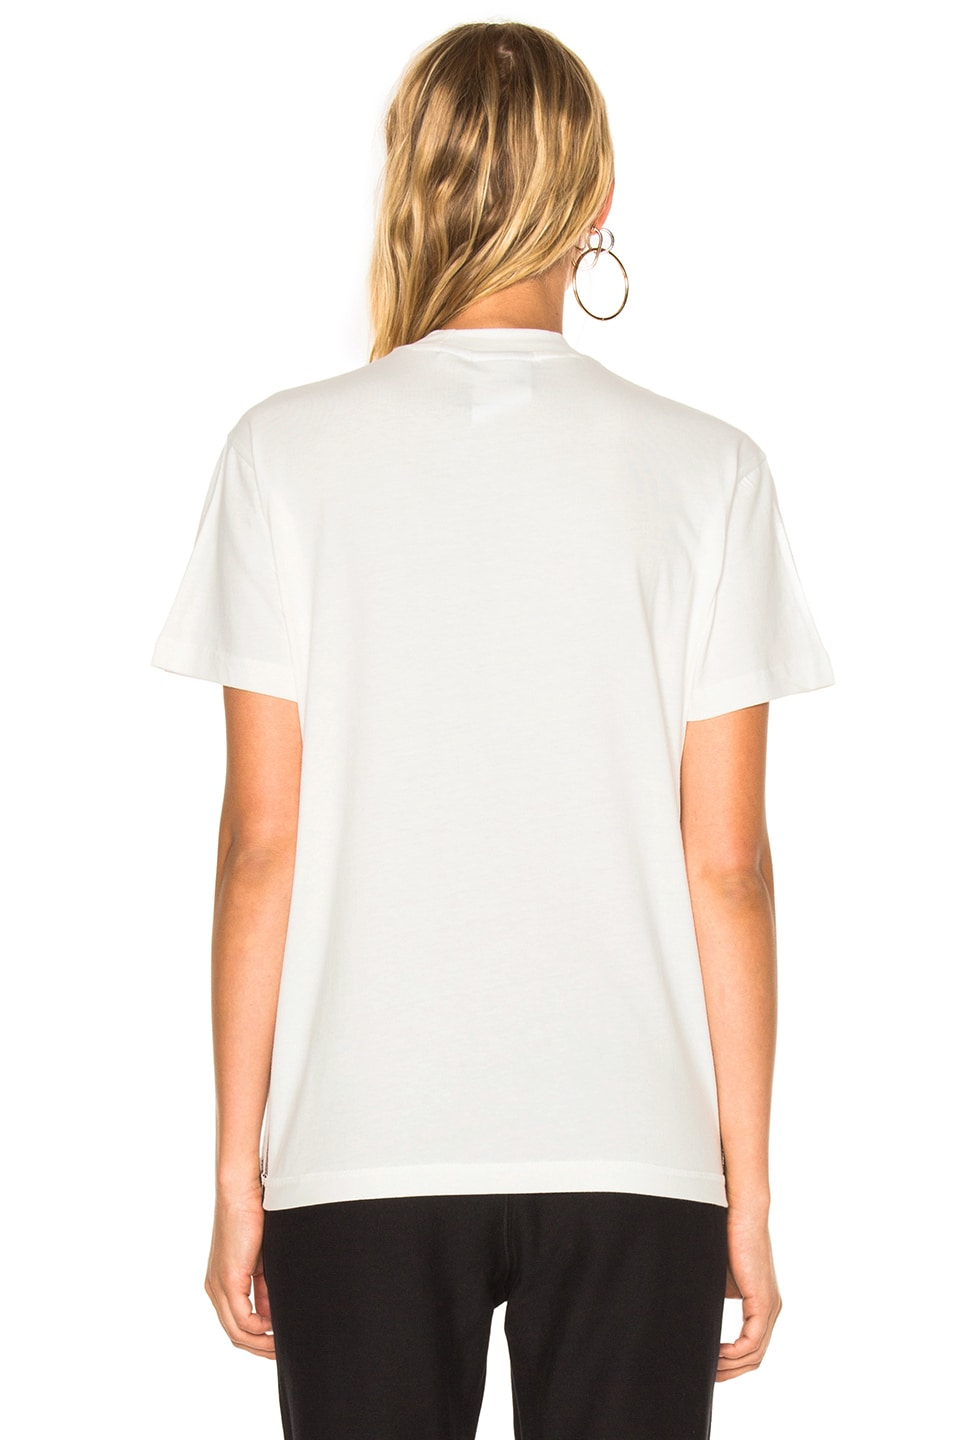 2 Stores In Stock Adidas Originals By Alexander Wang